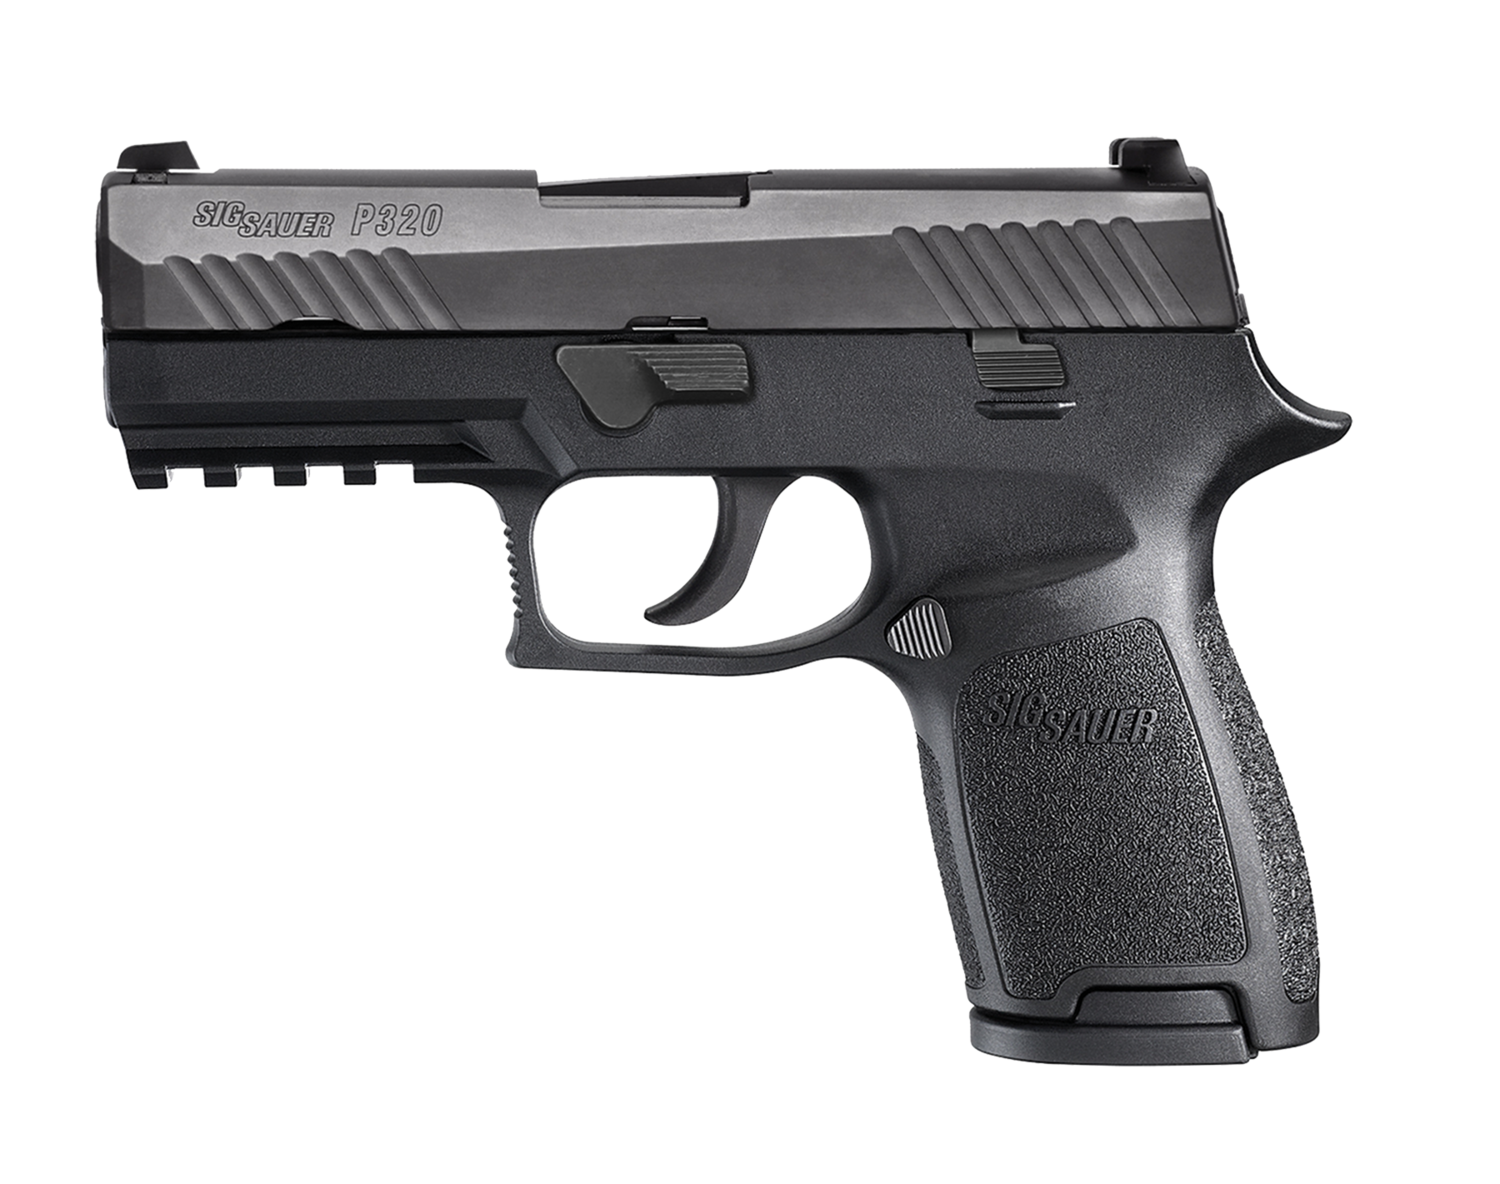 "80% Sig Sauer - P320 Compact Double - 40 Smith & Wesson (S&W) 3.9"" 13+1 - 2 Mags - Polymer Grip - Nitron Stainless Steel - Black"